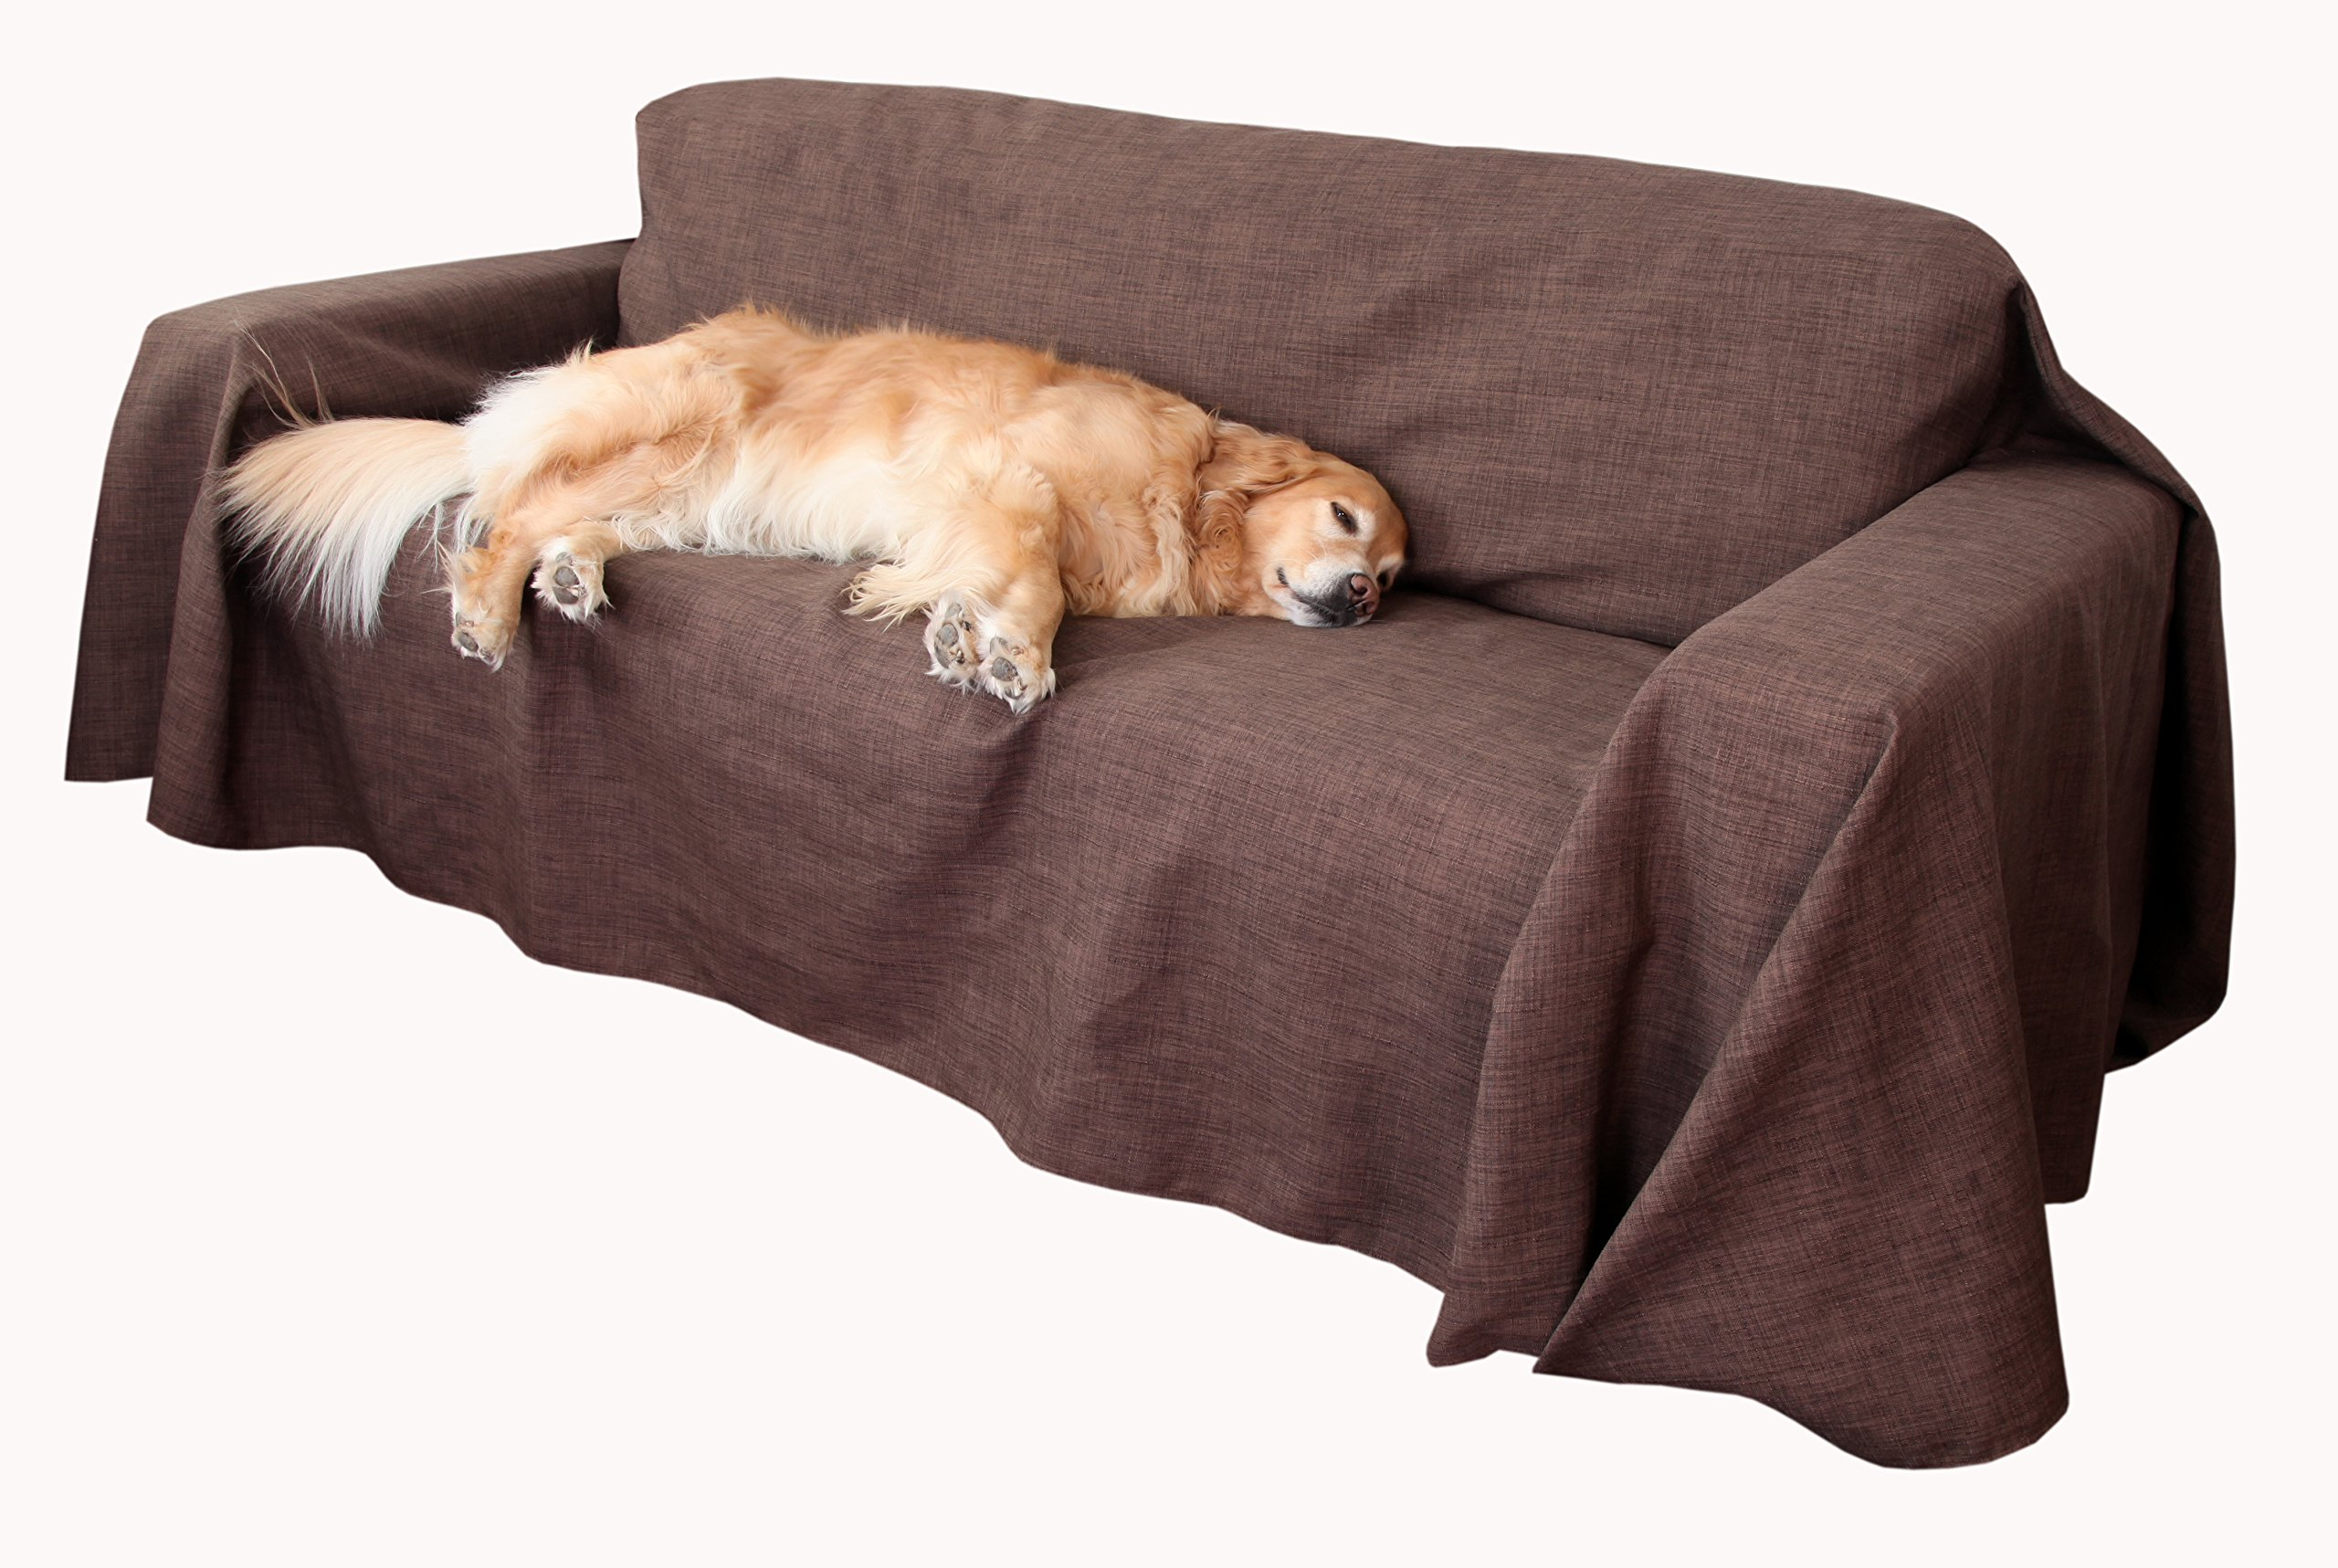 Floppy Ears Design Simple Couch CoverAll Protector, Chocolate, Medium Two Cushion Couch Loveseat Size